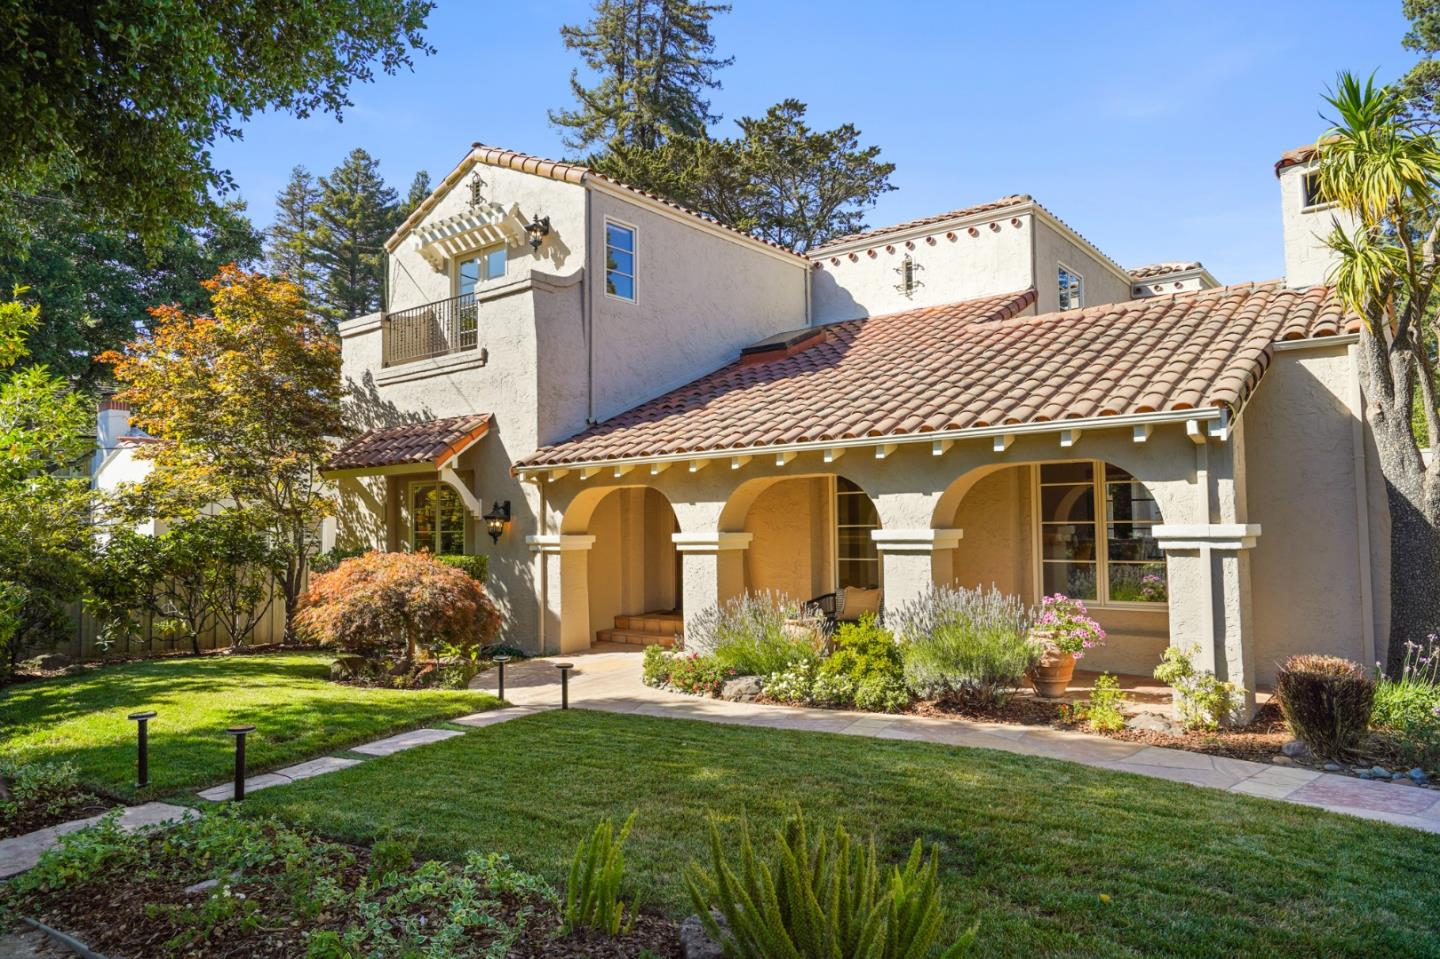 Located in the illustrious San Mateo Park District, this Mediterranean style home has charming curb appeal and stylish updates merging old-world charm into modern-day comfort for personal and social gatherings.  Spacious and practical floor plan highlights 4 BR's and 3.5 BA's (3/2 up) with multiple terraces including a master suite deck that faces the picturesque backyard, a great place to enjoy the evening light, and a Juliet balcony at the quiet street side BR overlooking the majestic Oak tree. The main level offers a light filled living room with fireplace and leaded glass window nooks.  Banquet size formal dining room has incredible period detail.  The property presents an open plan family room, Chefs kitchen, built-in office, and pantry w/underground wine cellar.  2nd master/au pair, laundry room and powder room complete the main level.  Heavenly backyard has mature trees, lawn, flagstone seating & built-in barbecue!  3,500 sf on a 12,000 sf lot.  Proximity to downtown Burlingame!